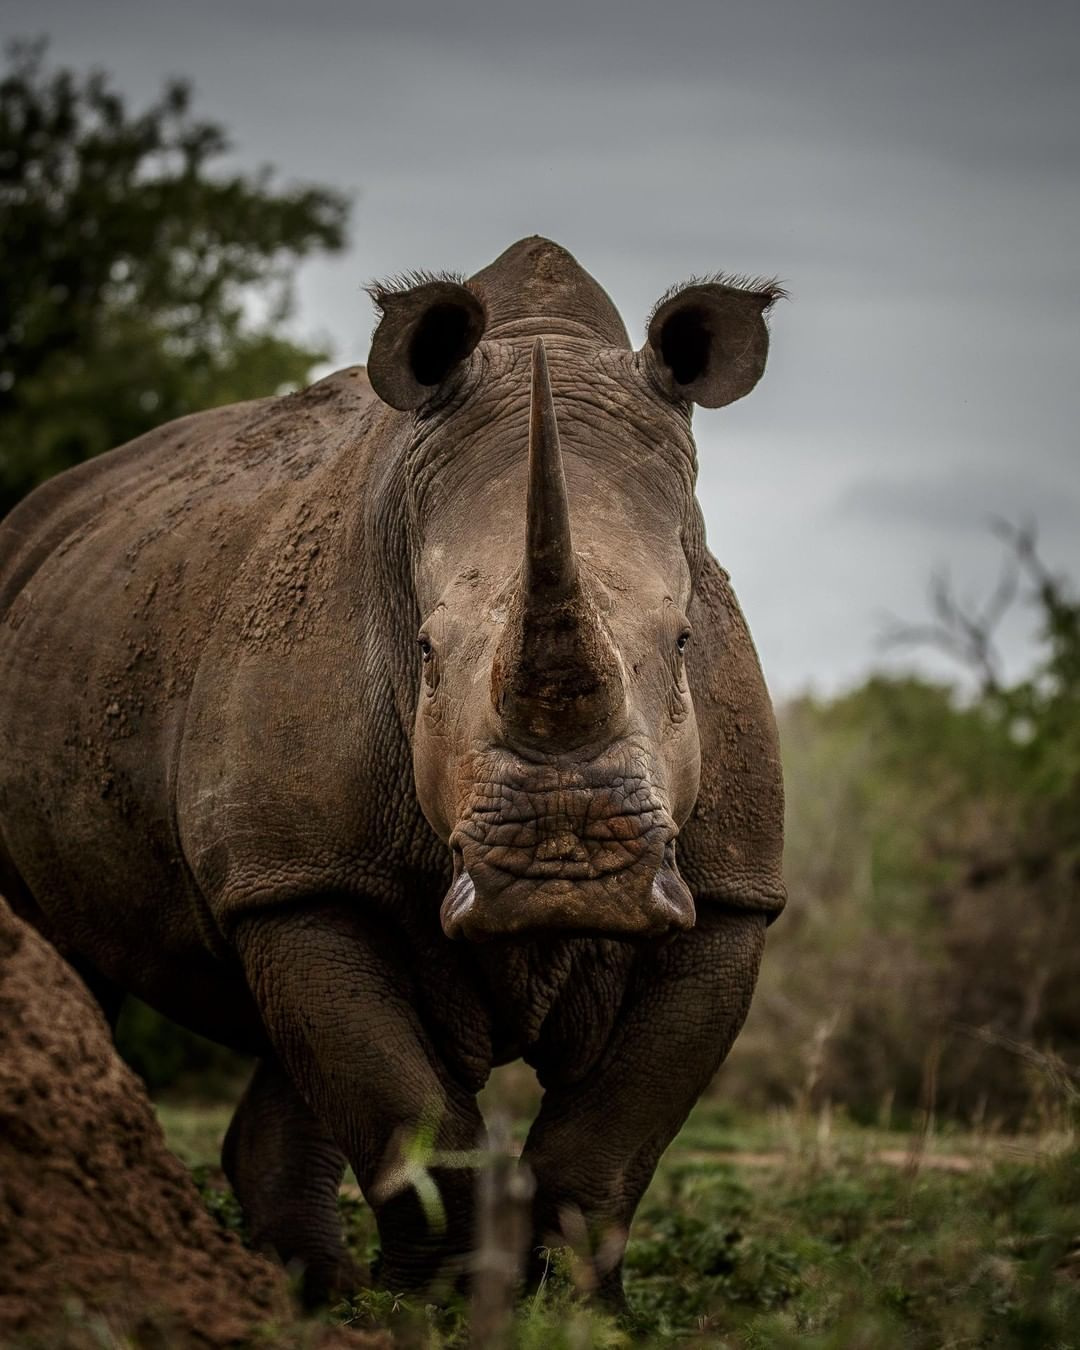 Discovery On Instagram Both Black And White Rhinoceroses Are Actually Gray They Are Different Not In Color But In White Rhinoceros Rhino Animal Rhinoceros